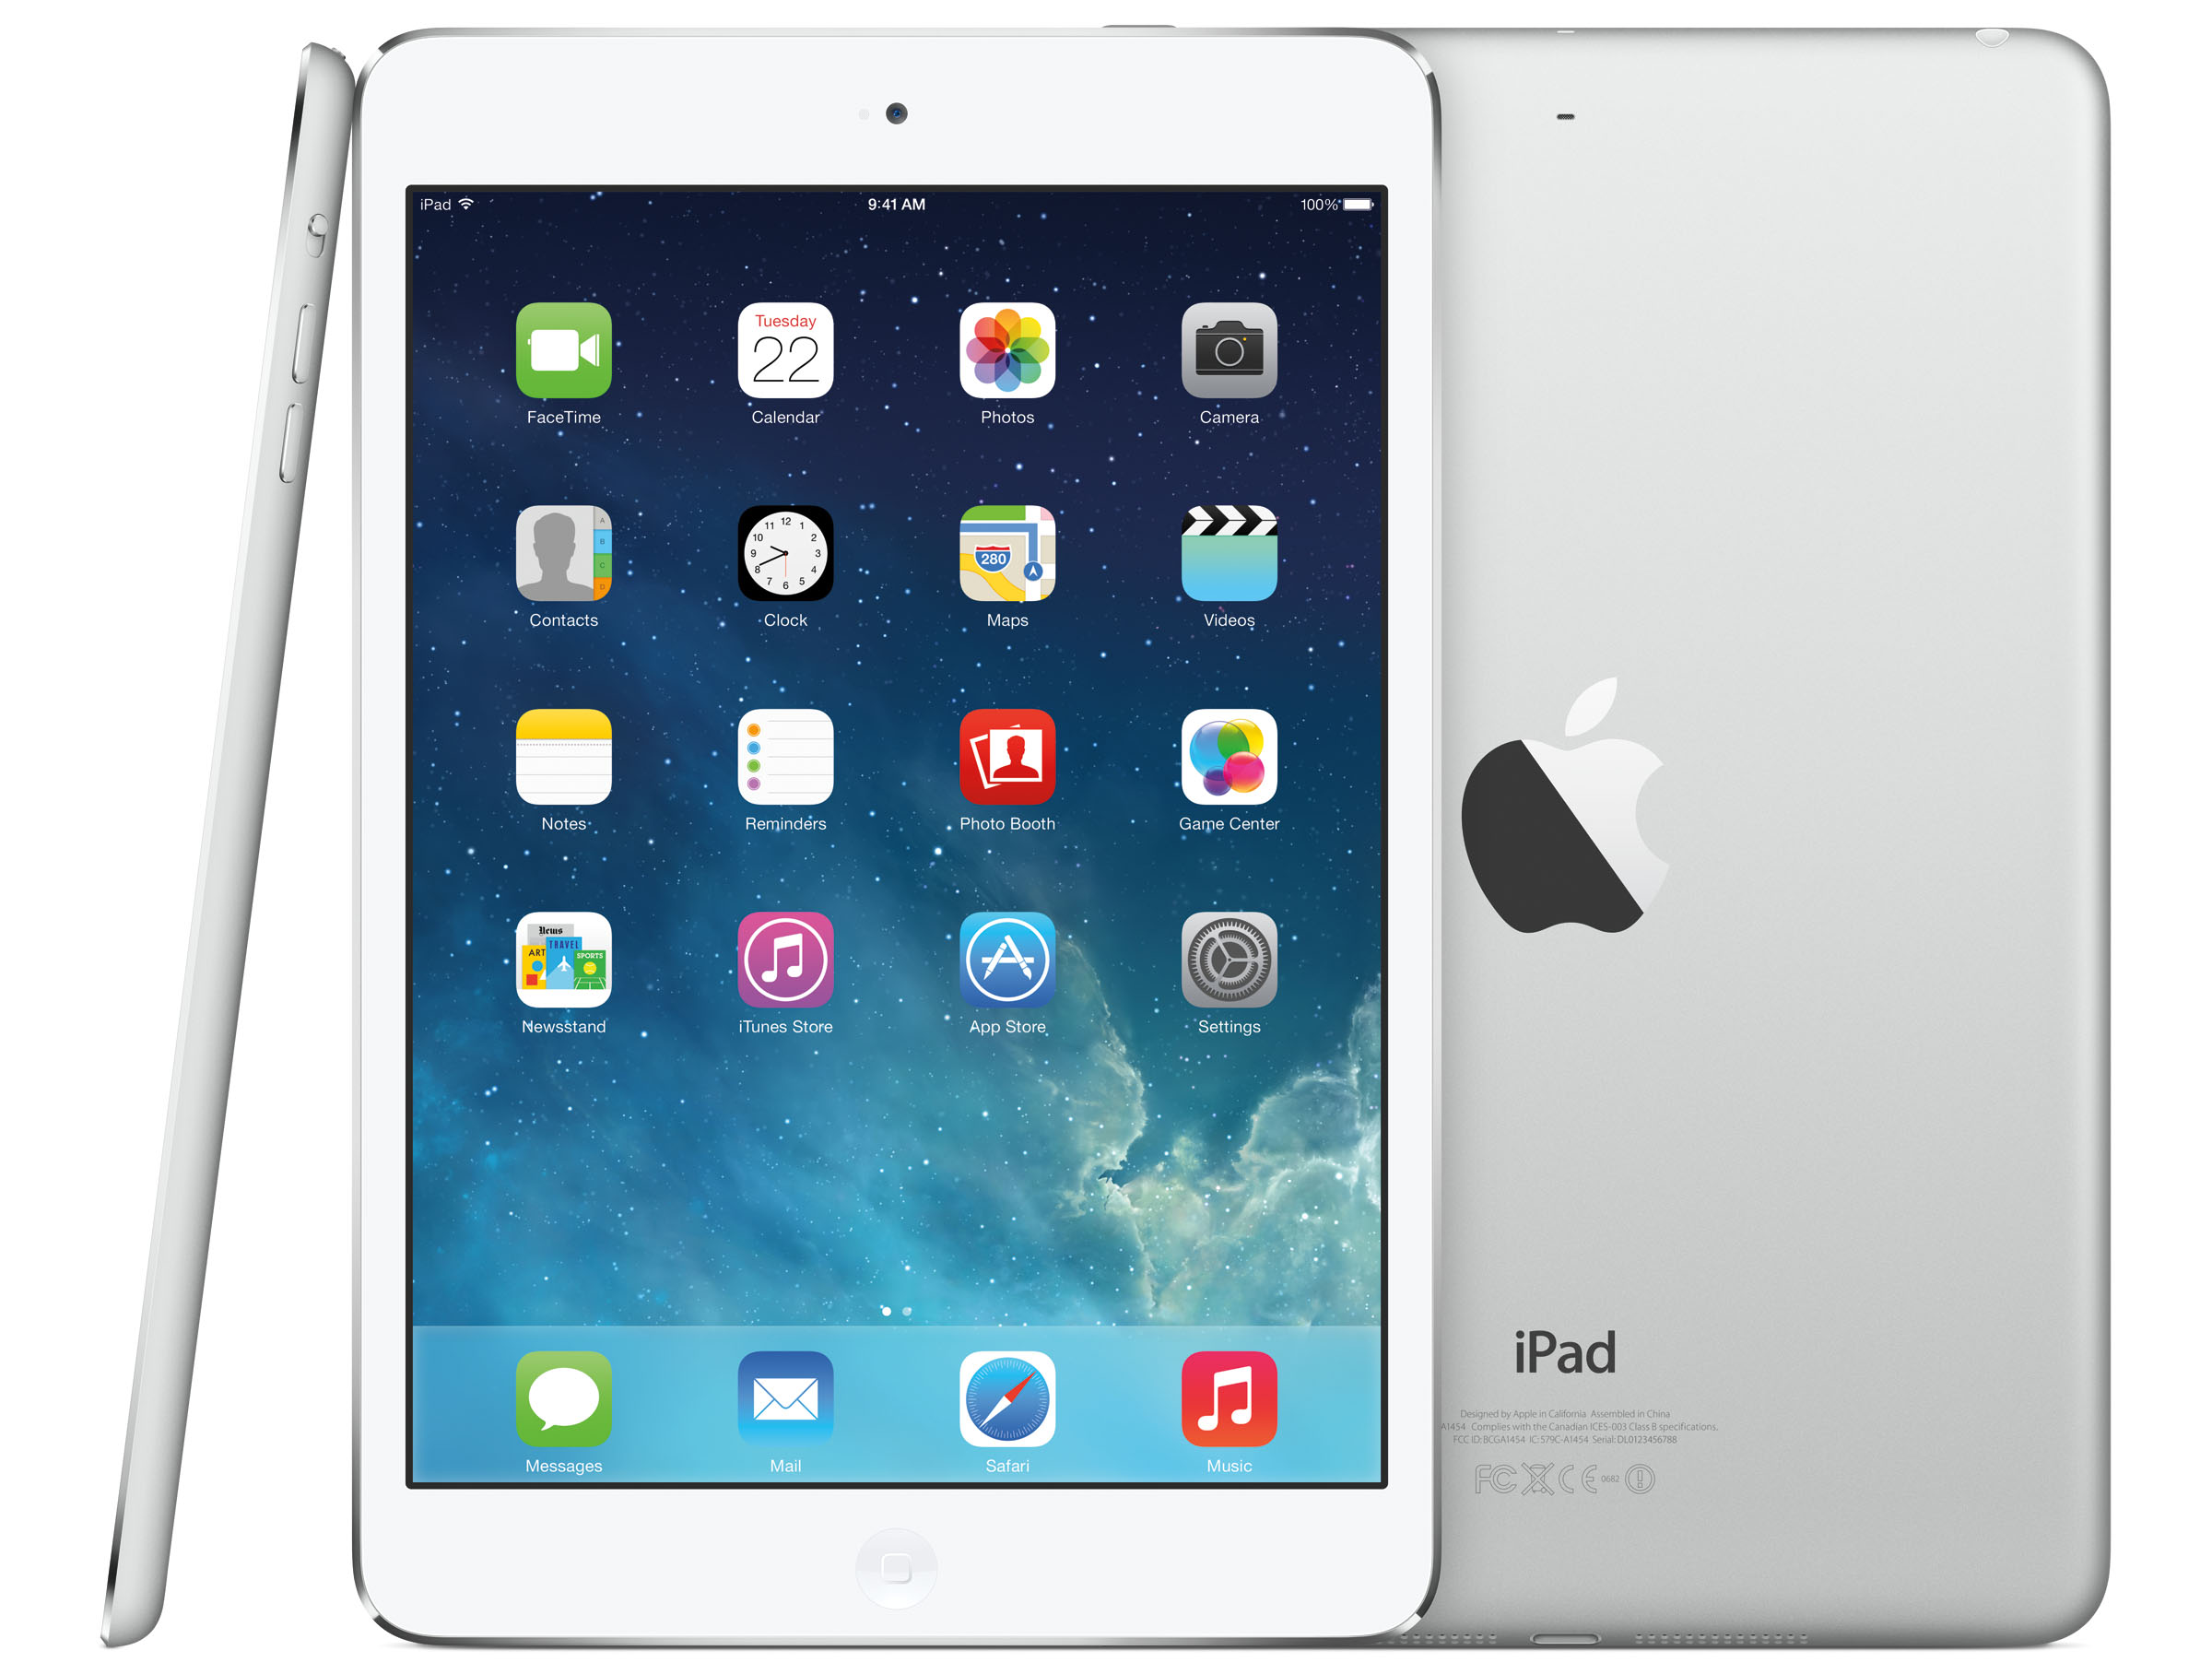 Apple iPad Mini refreshed with a retina display, A7 64 bit ...